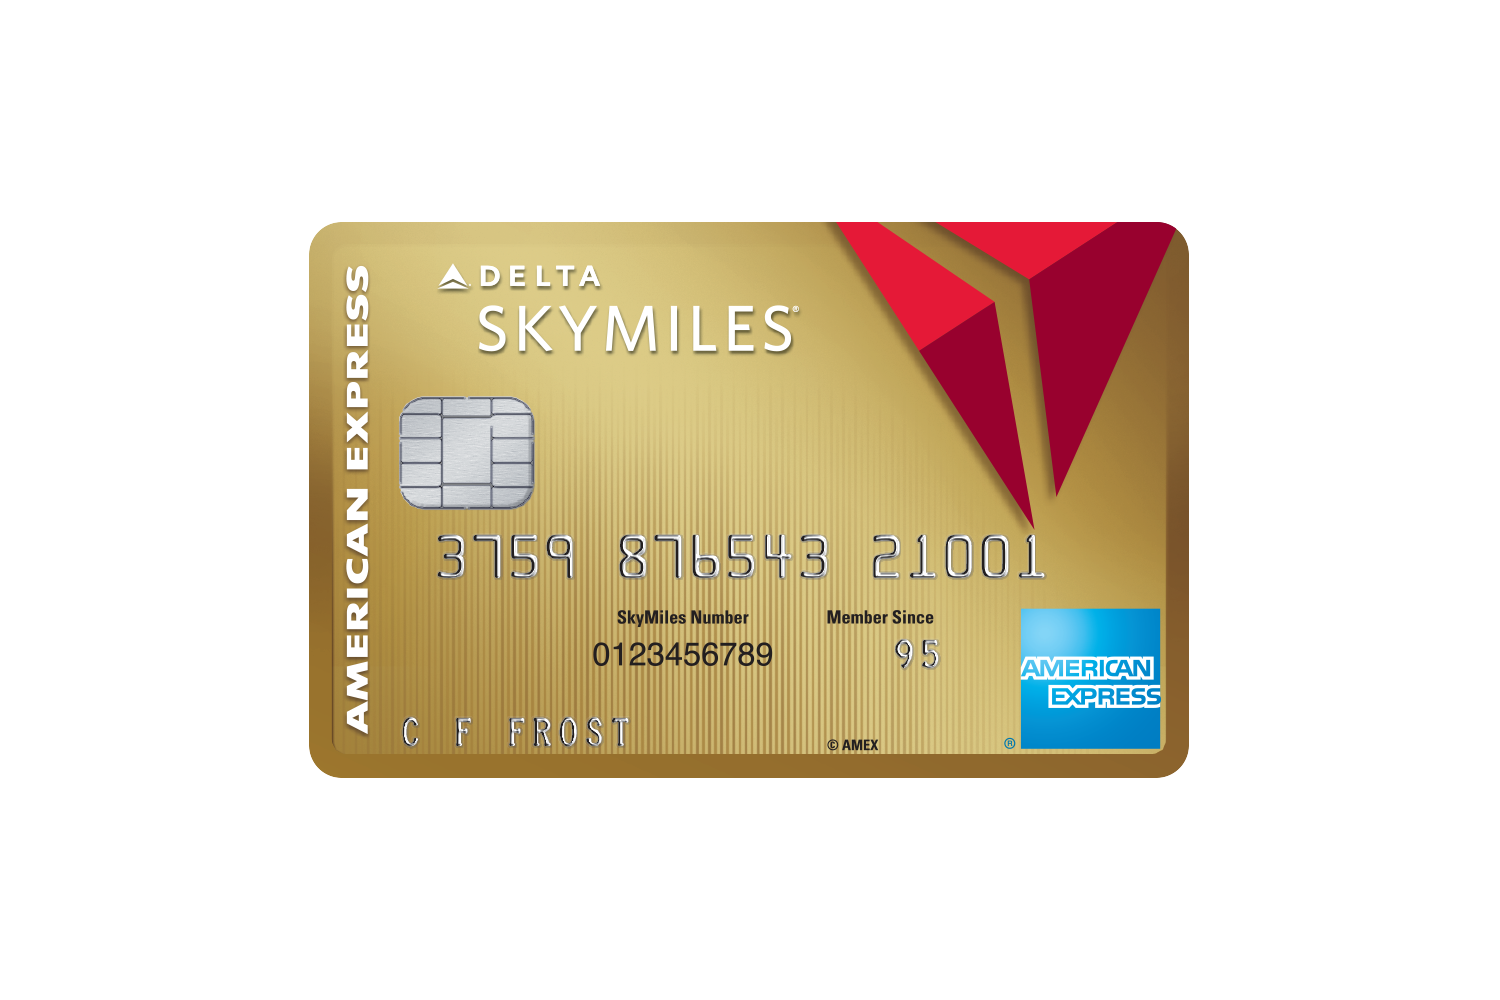 delta skymiles travel rewards credit card offers delta. Black Bedroom Furniture Sets. Home Design Ideas